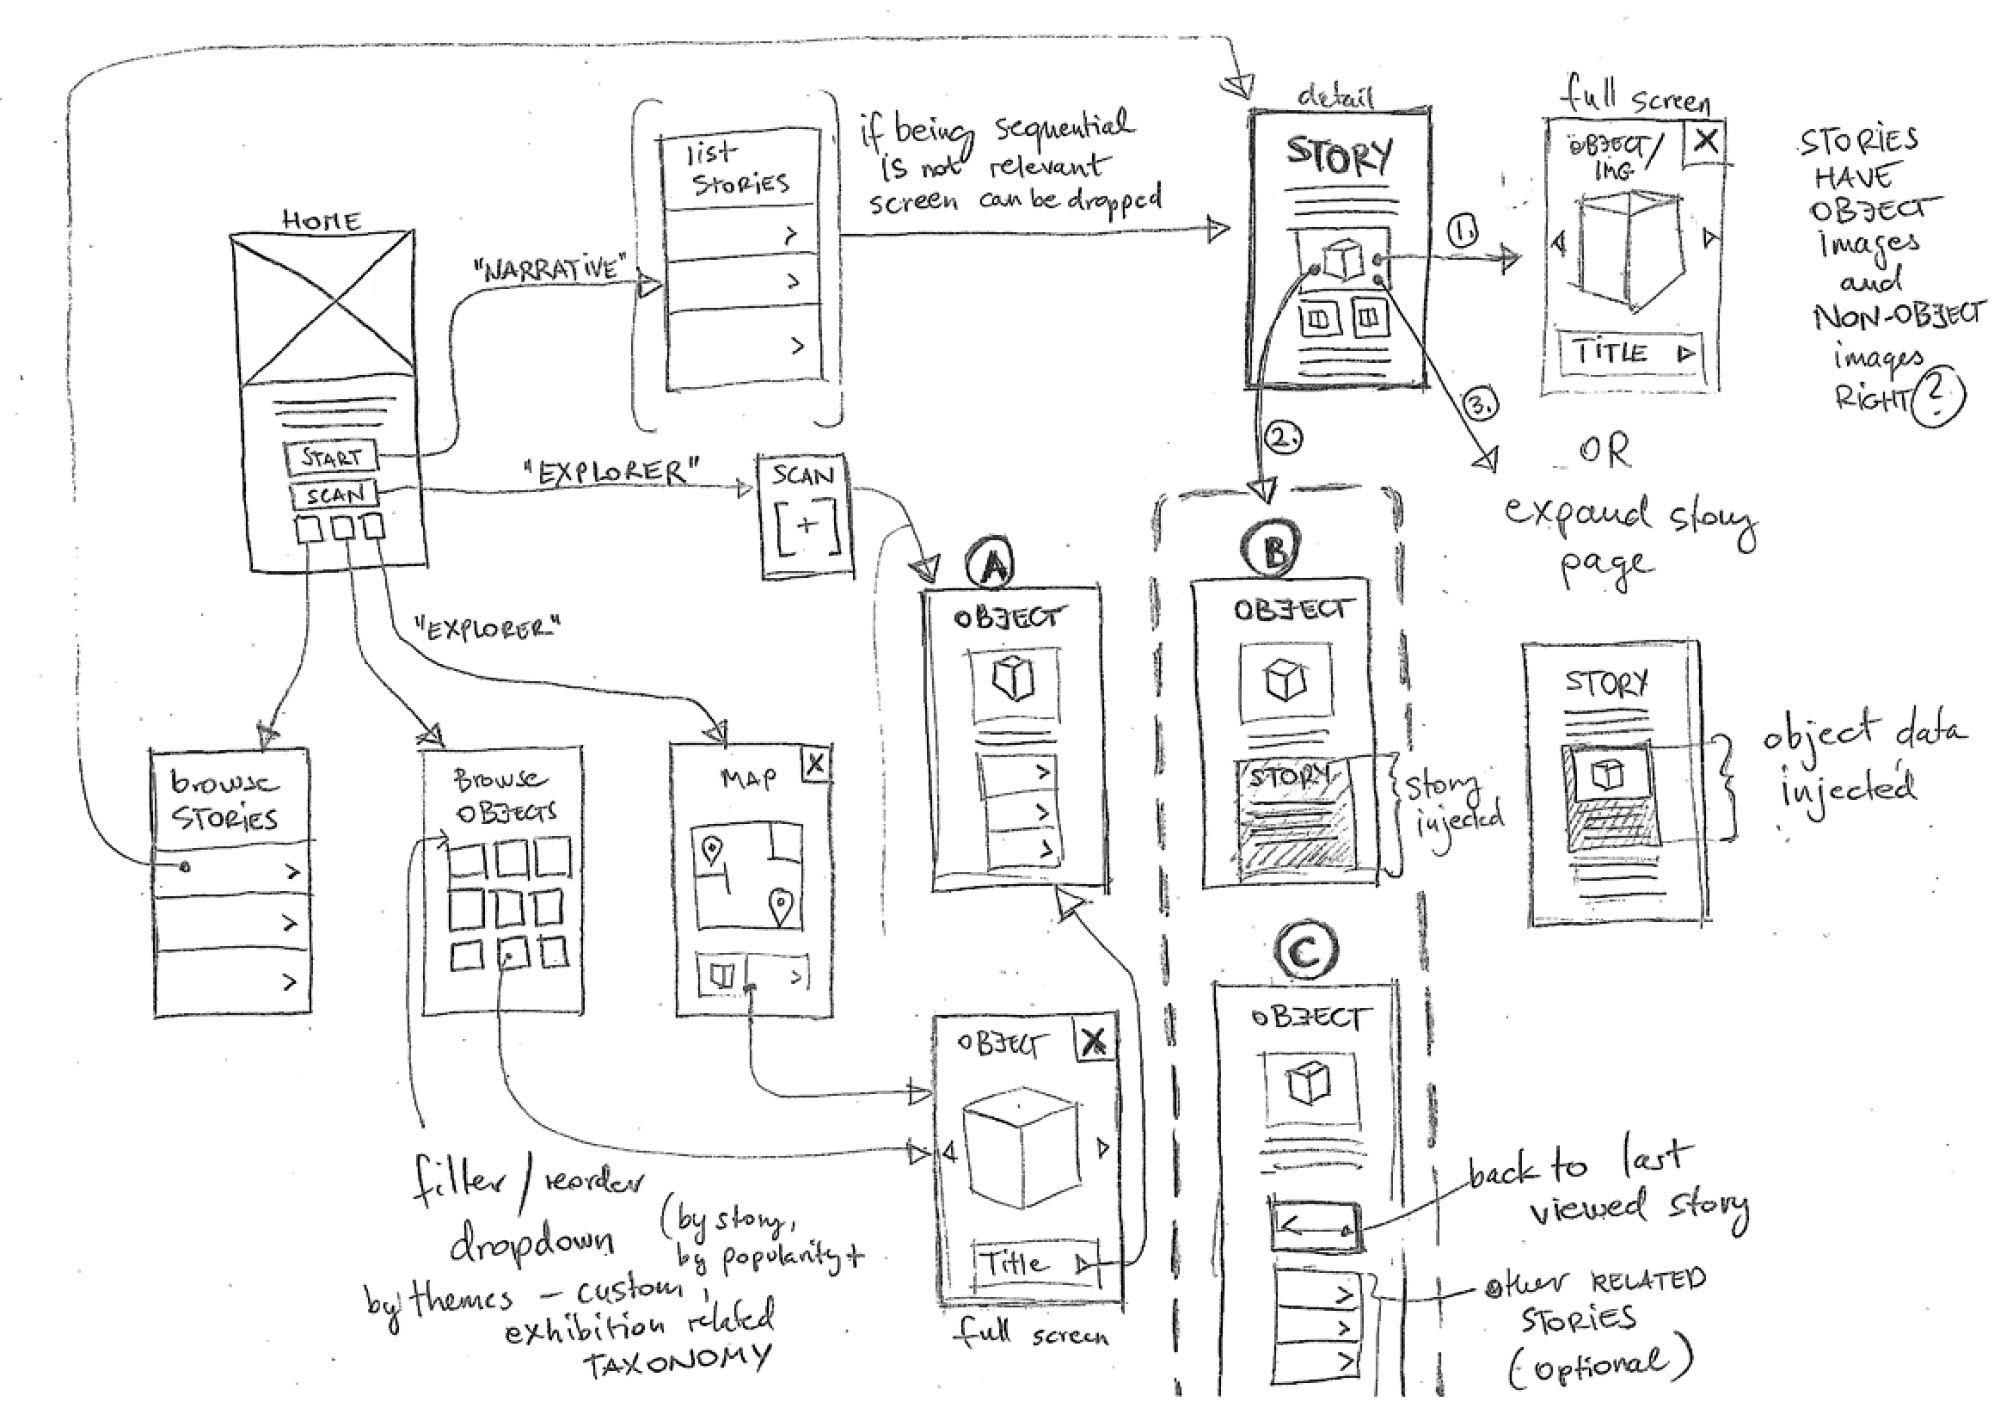 Drawing of the iphone app development process. This